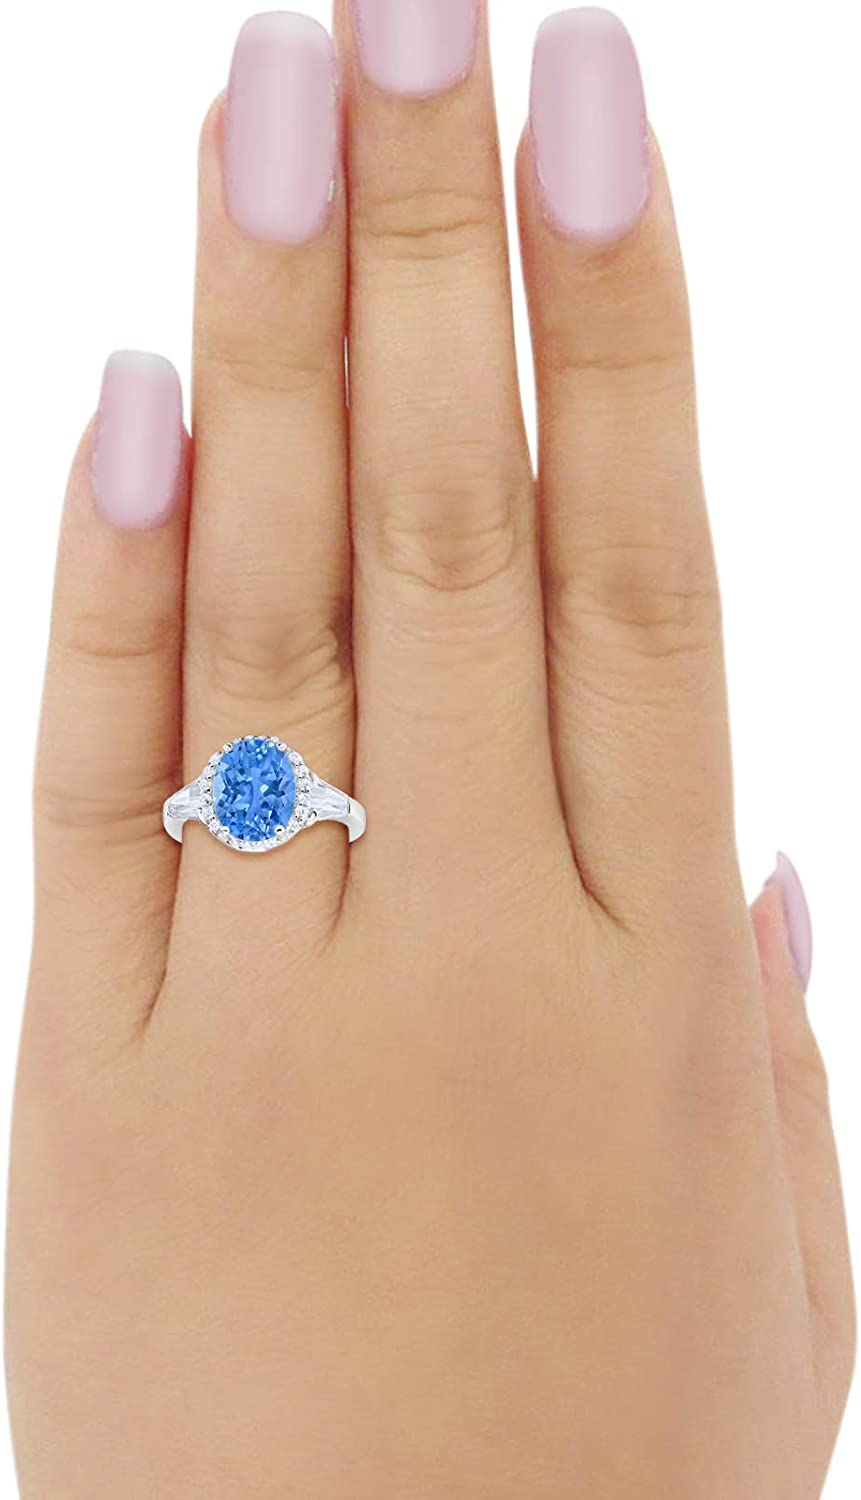 Halo Art Deco Oval Wedding Engagement Ring Round Baguette Cubic Zirconia 925 Sterling Silver Blue Apple Co